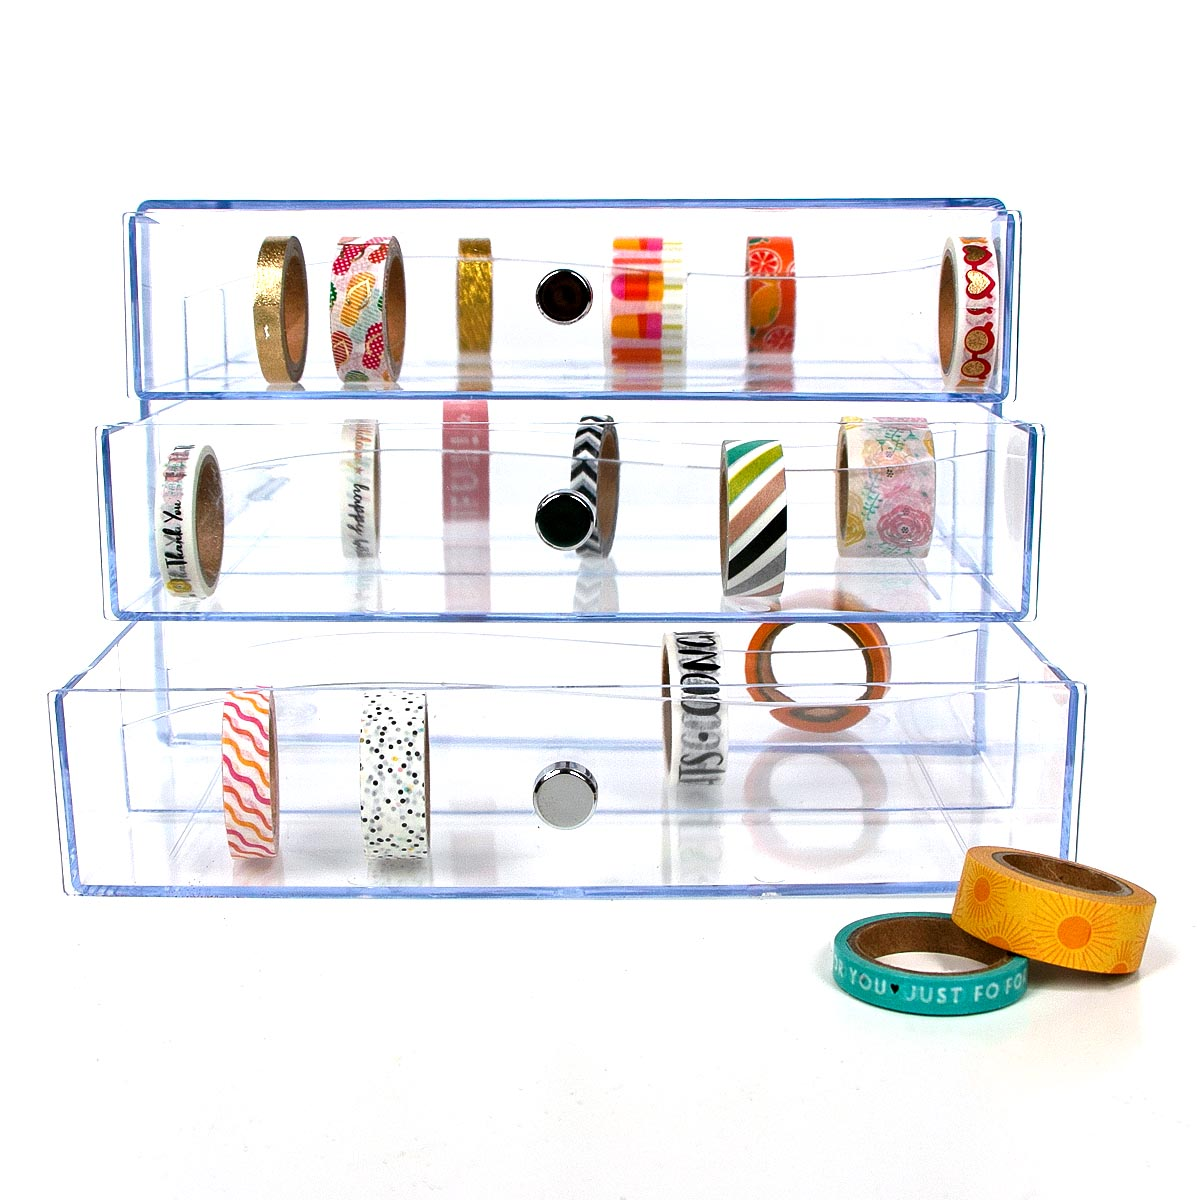 Enter into Blitsy's Weekly Craft Giveaway for a chance to win the clear Defelcto Washi Tape Storage Cube! Giveaway Image